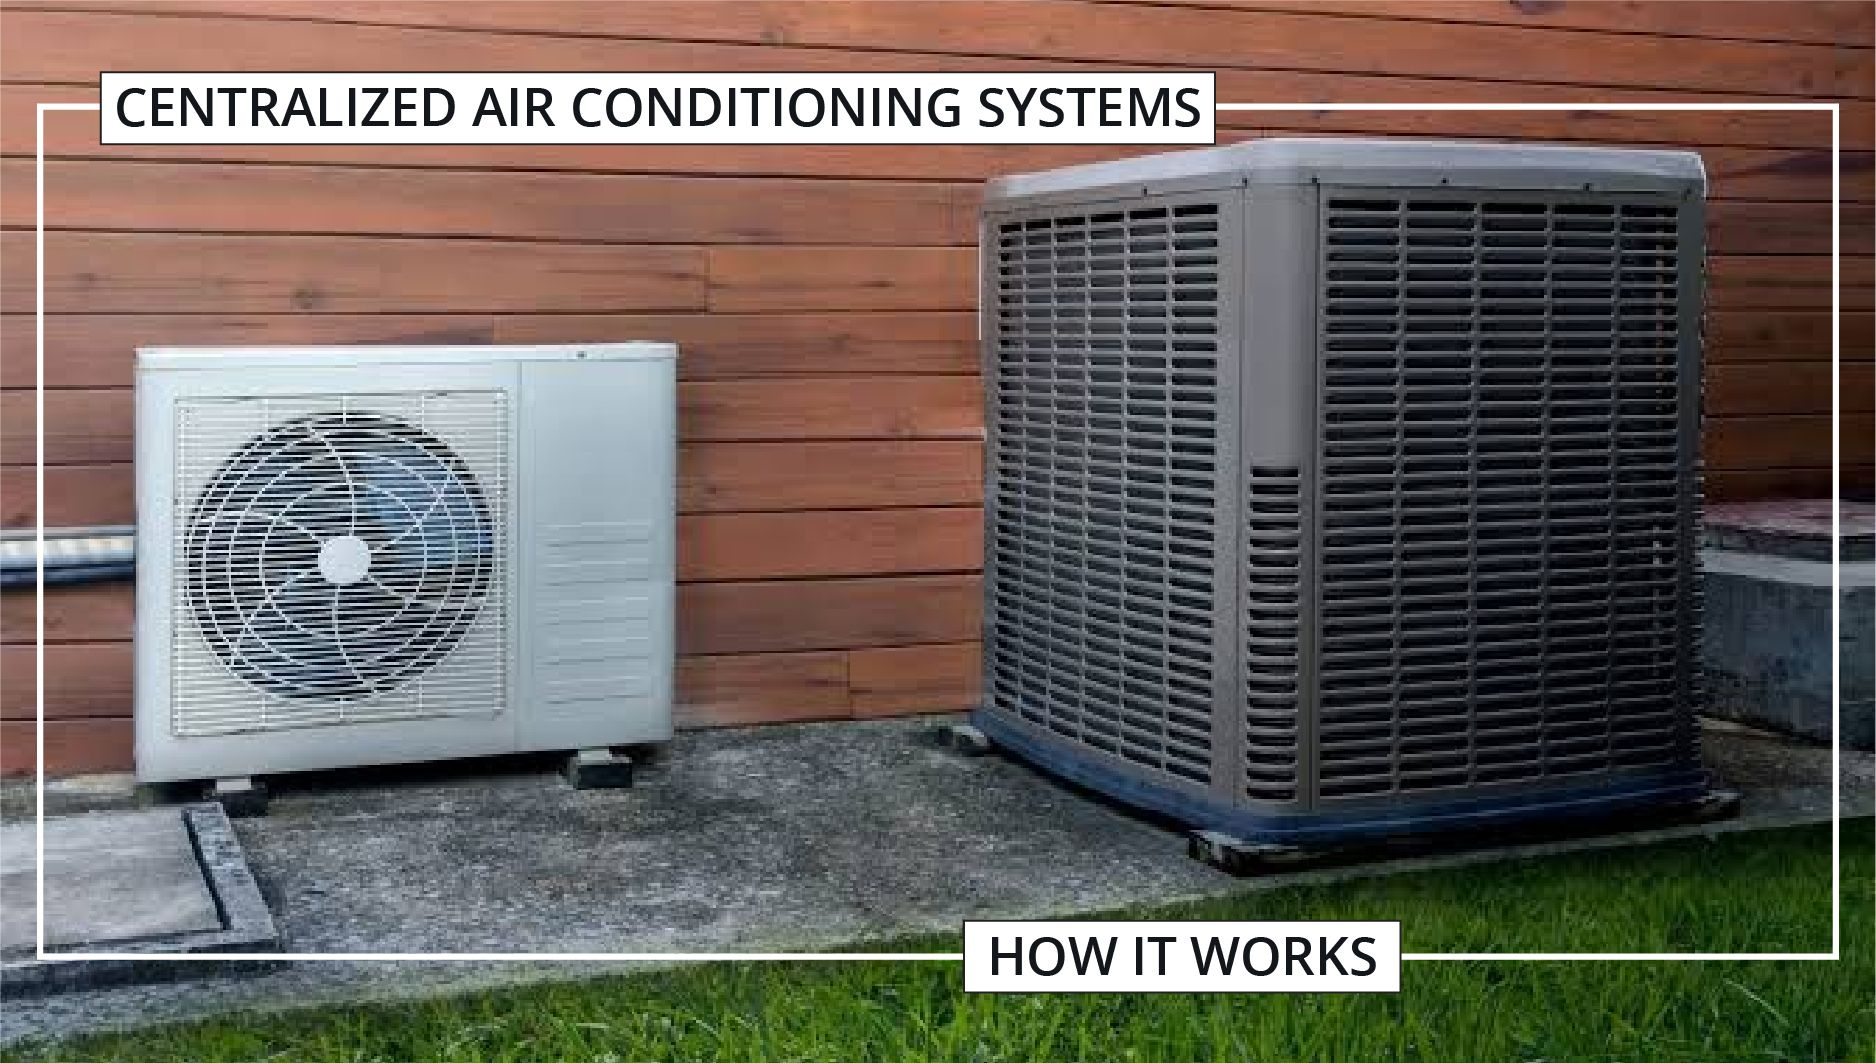 Centralized Air Conditioning Systems How It Works Read